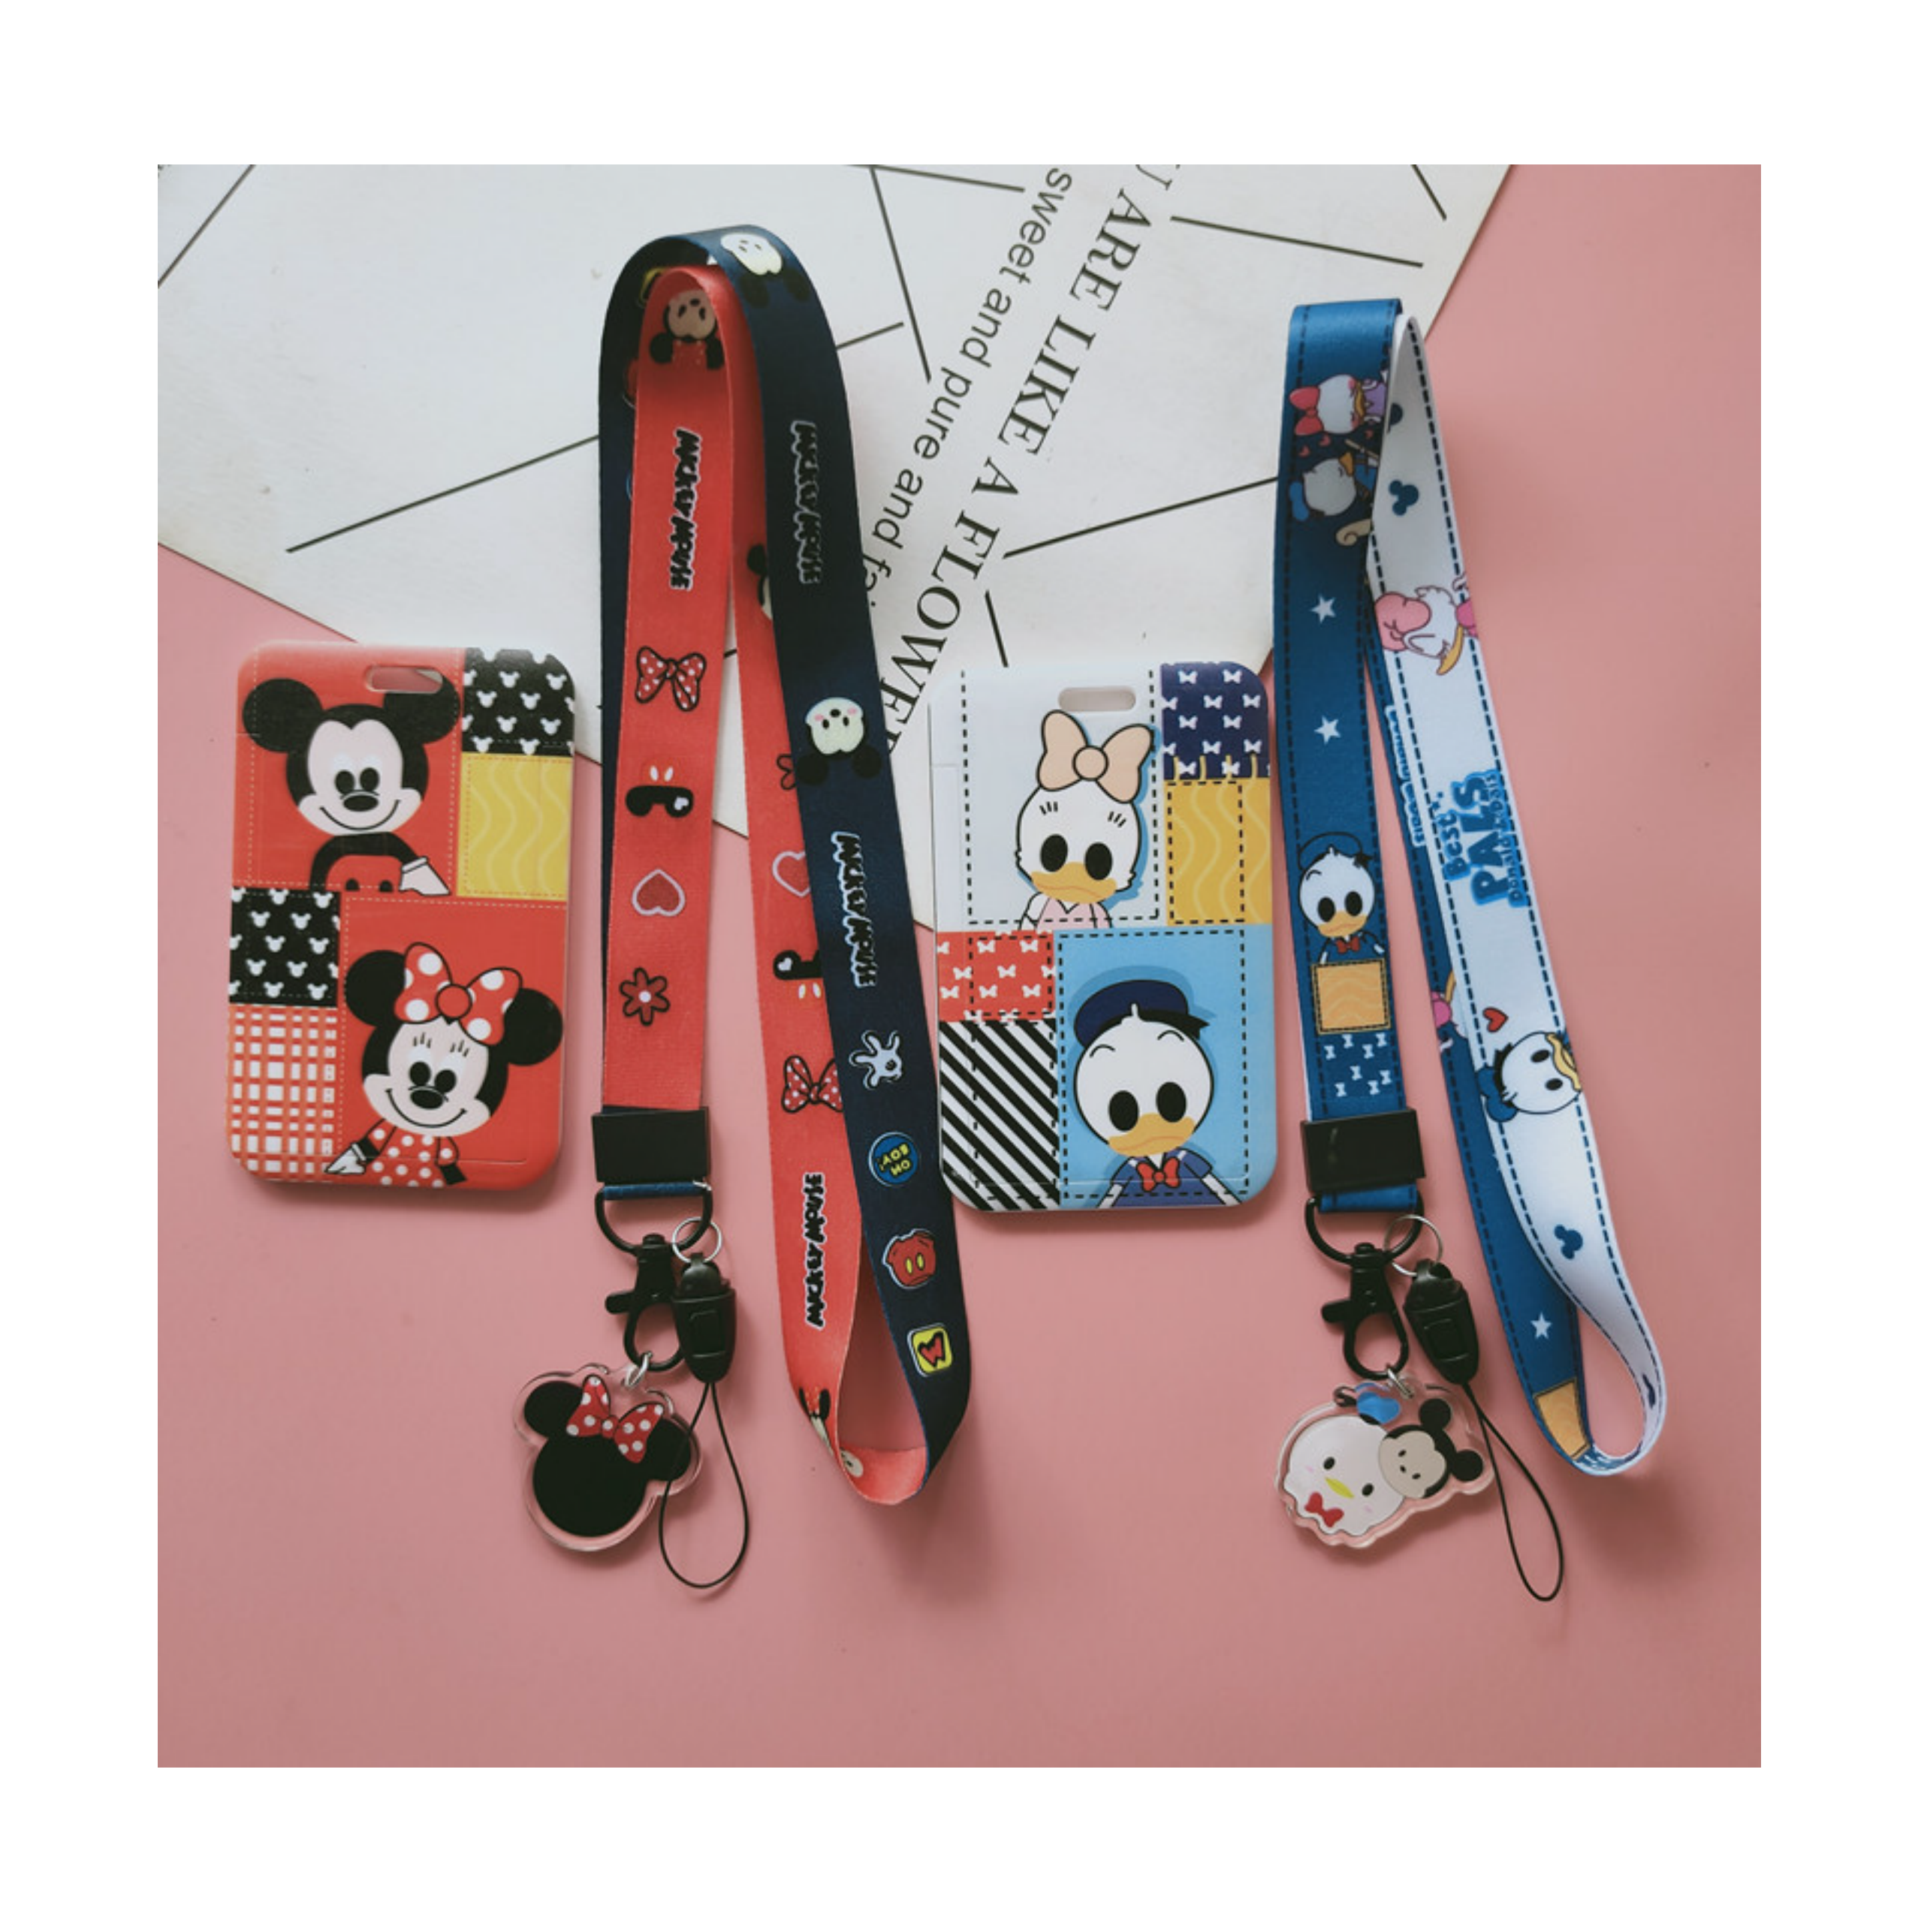 Stitch Cartoon Lanyard Id Badge Holder Key Neck trap Kids Gifts,20 Pieces, Full color printed